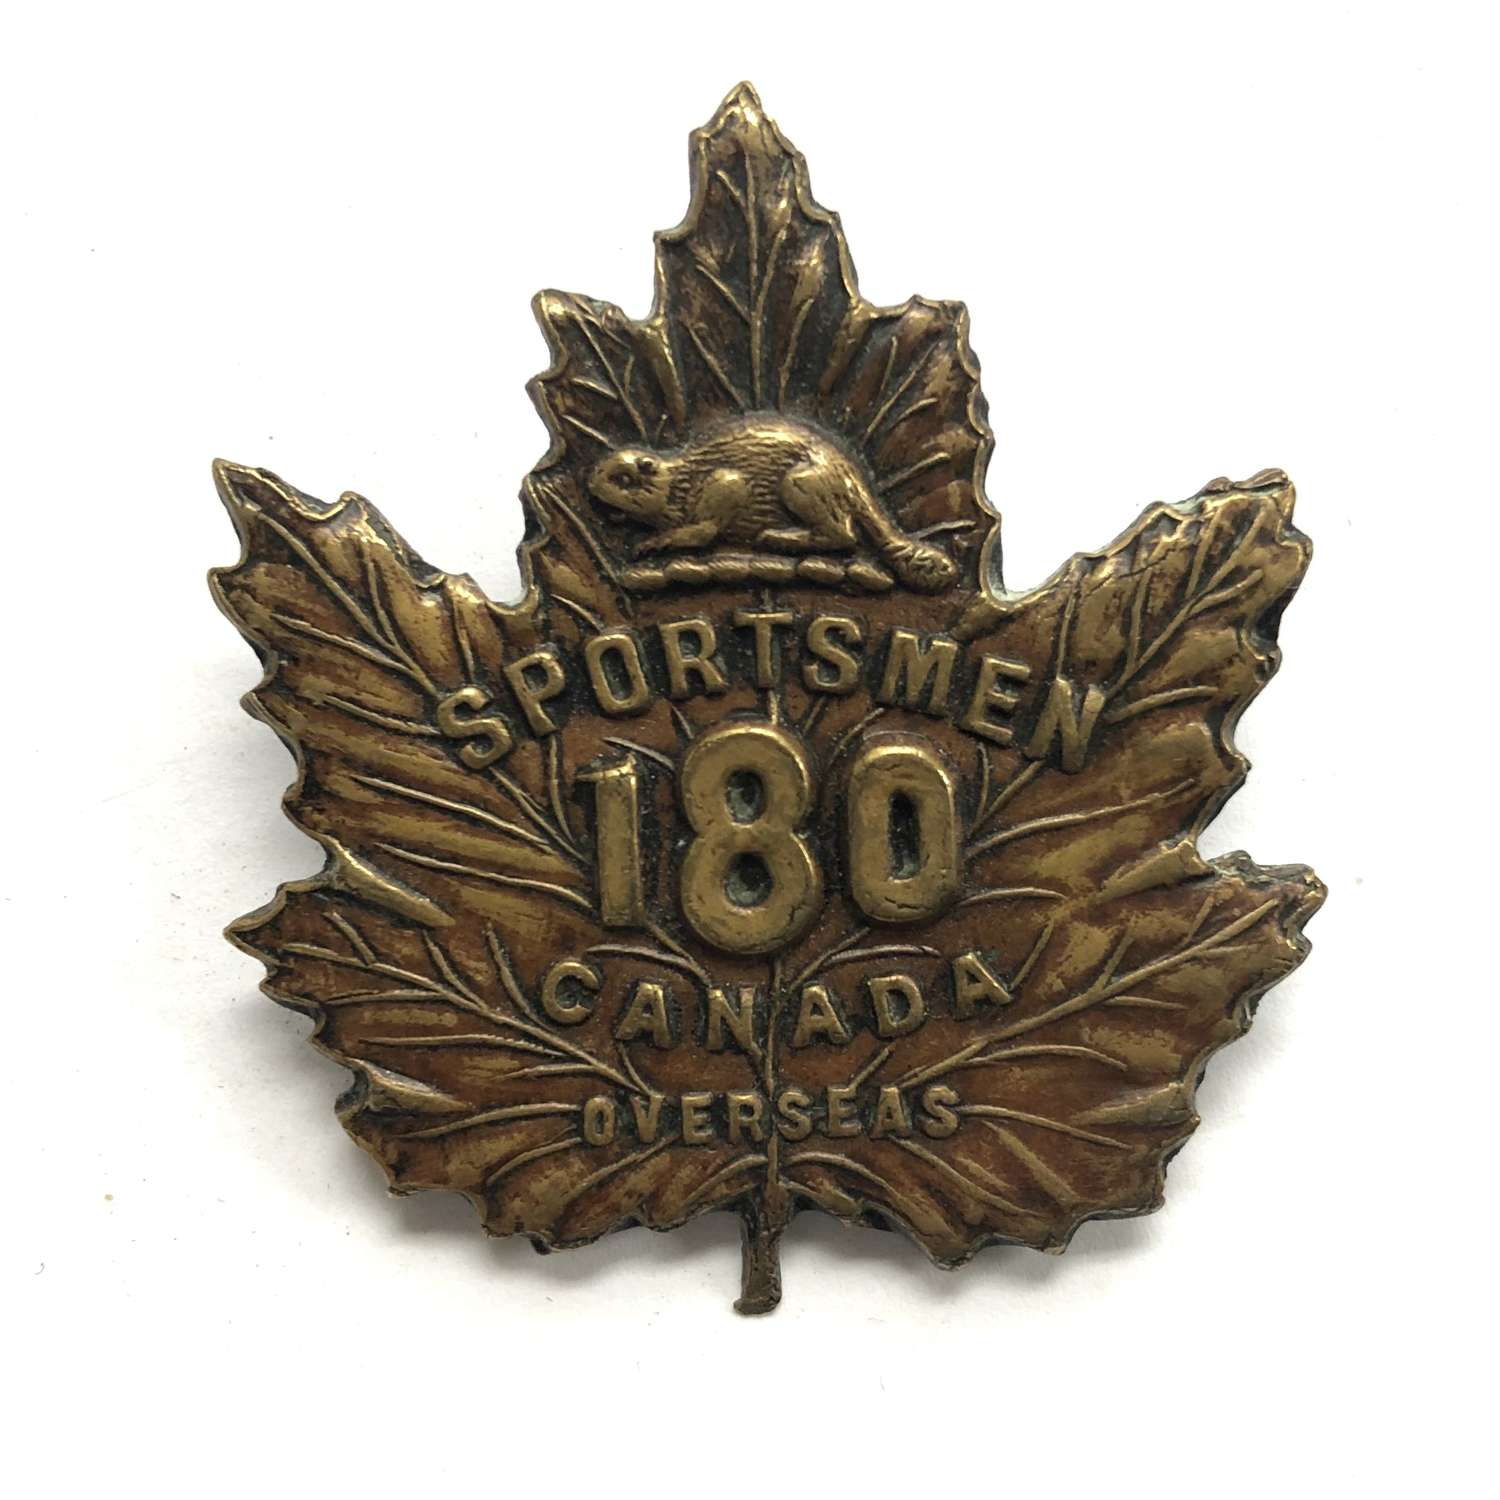 Canadian 180th Sportsmsn Battalion CEF WW1 cap badge